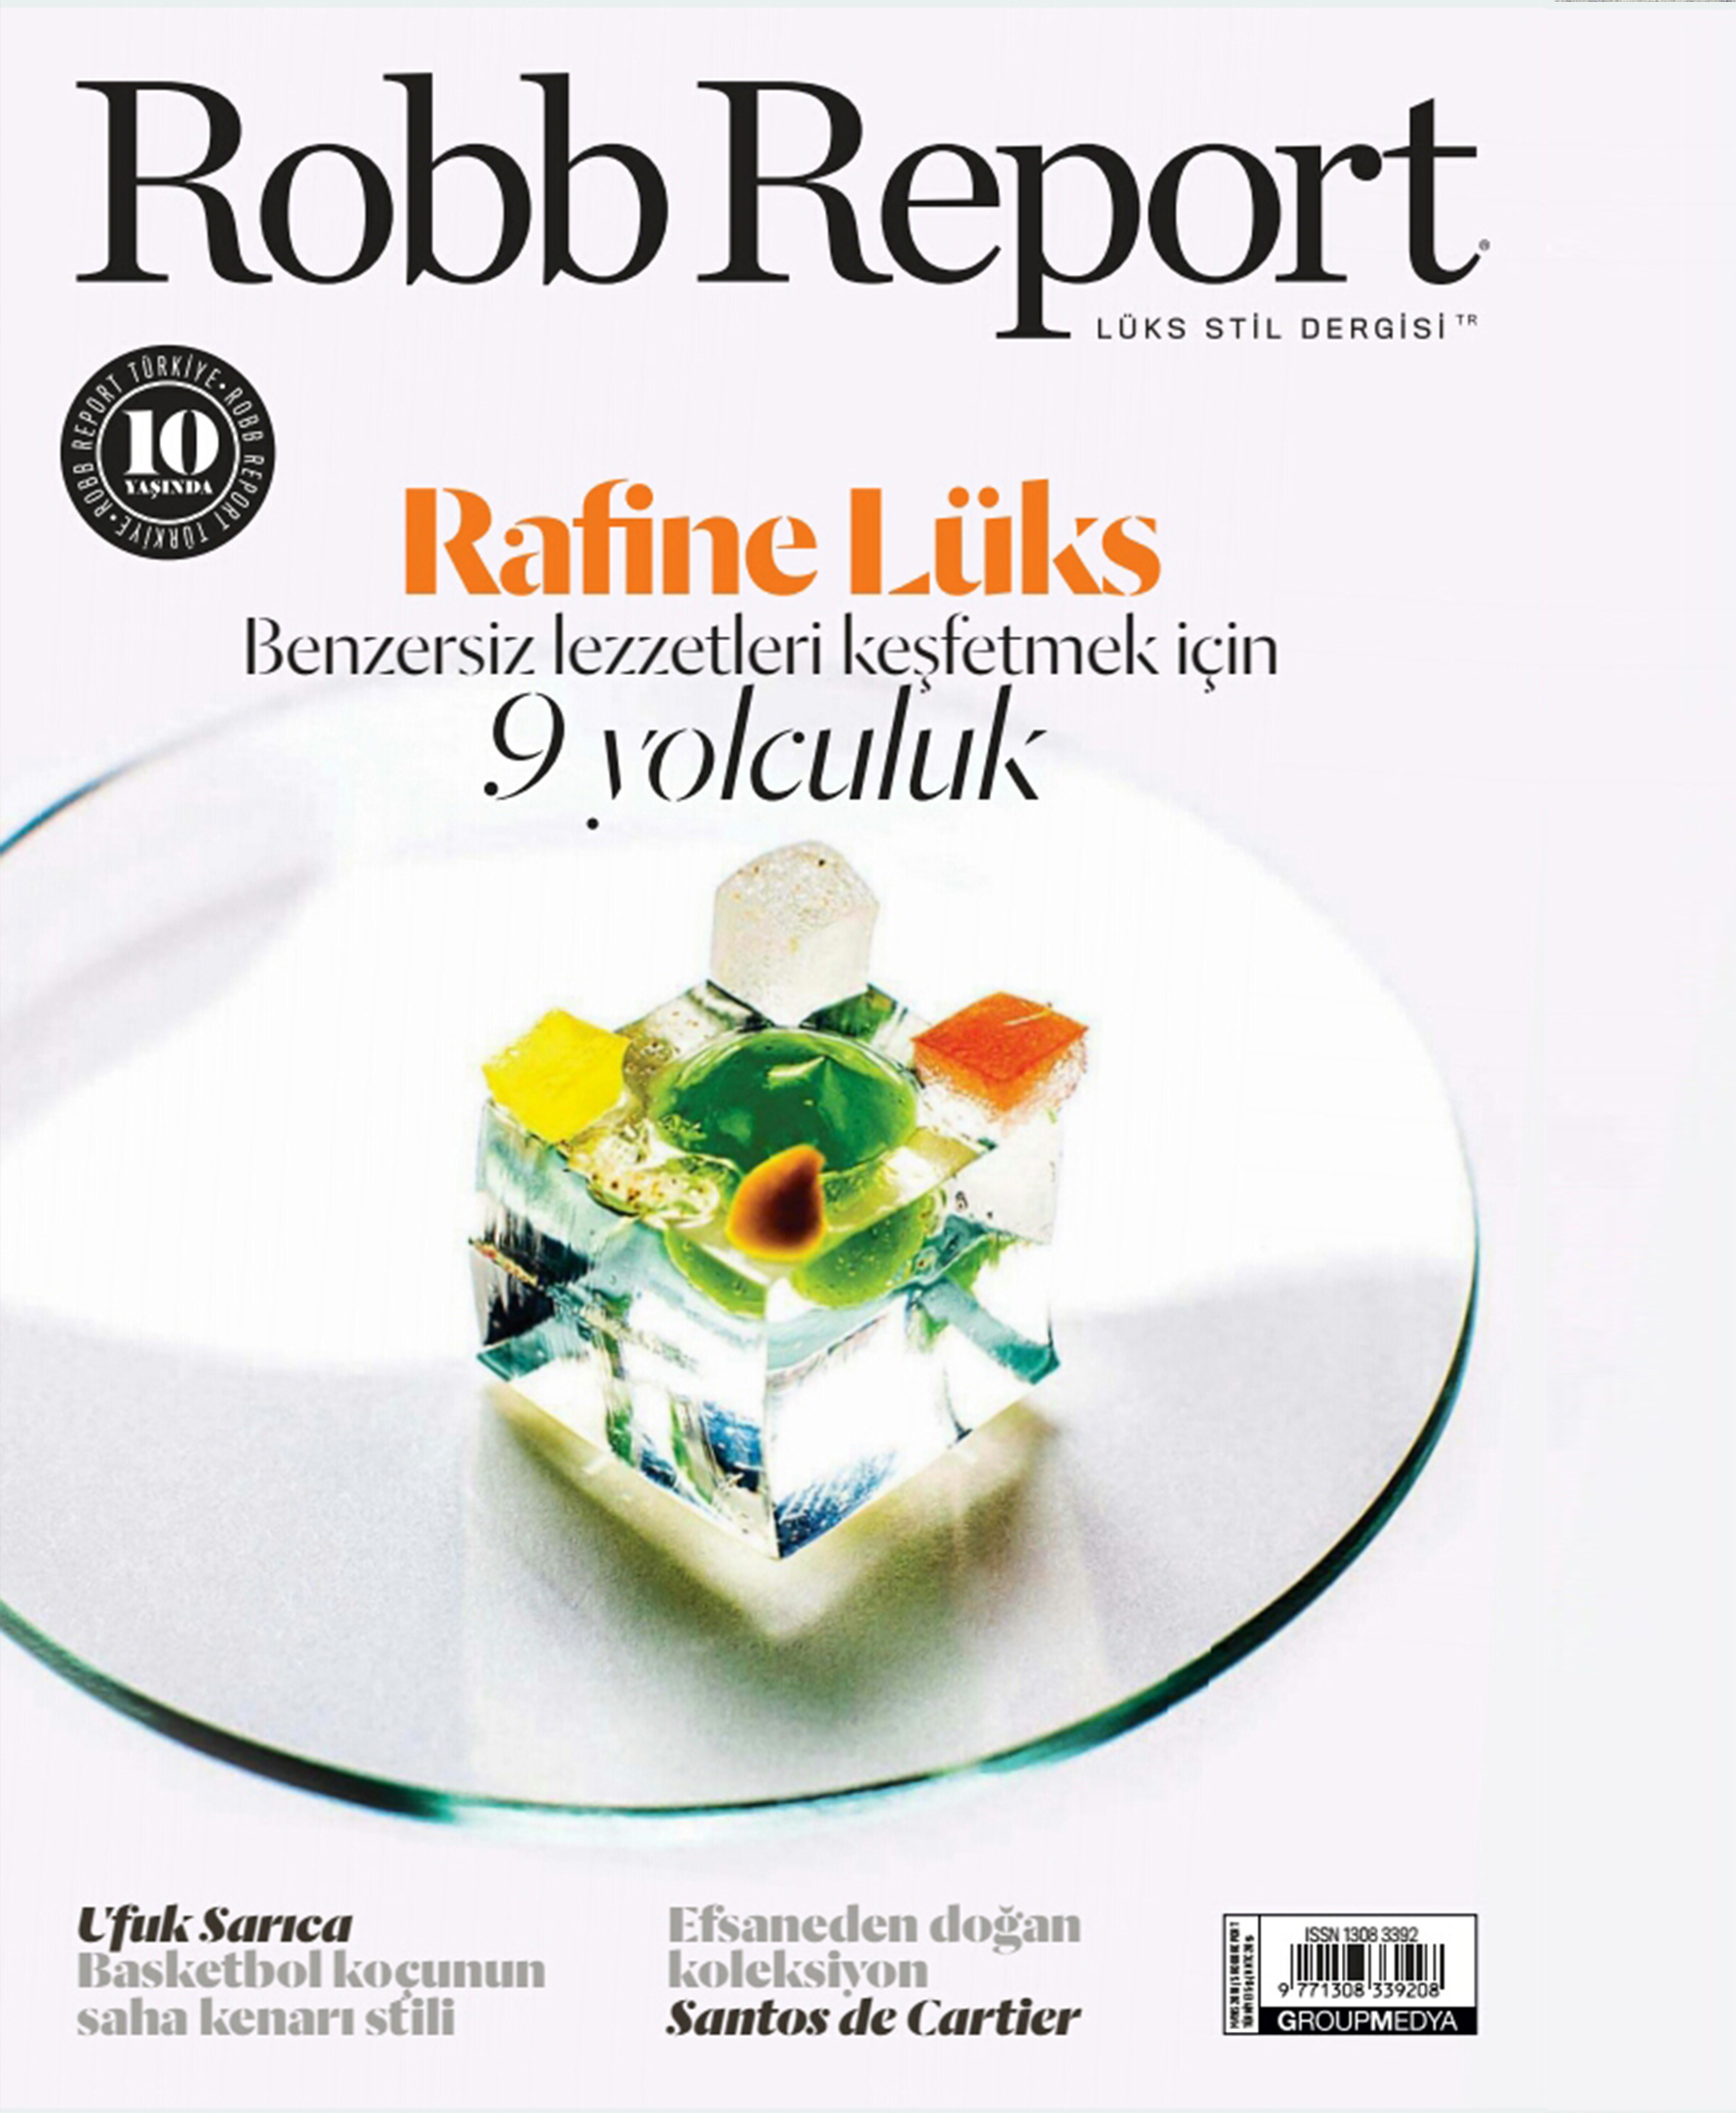 Robb Report 18 May